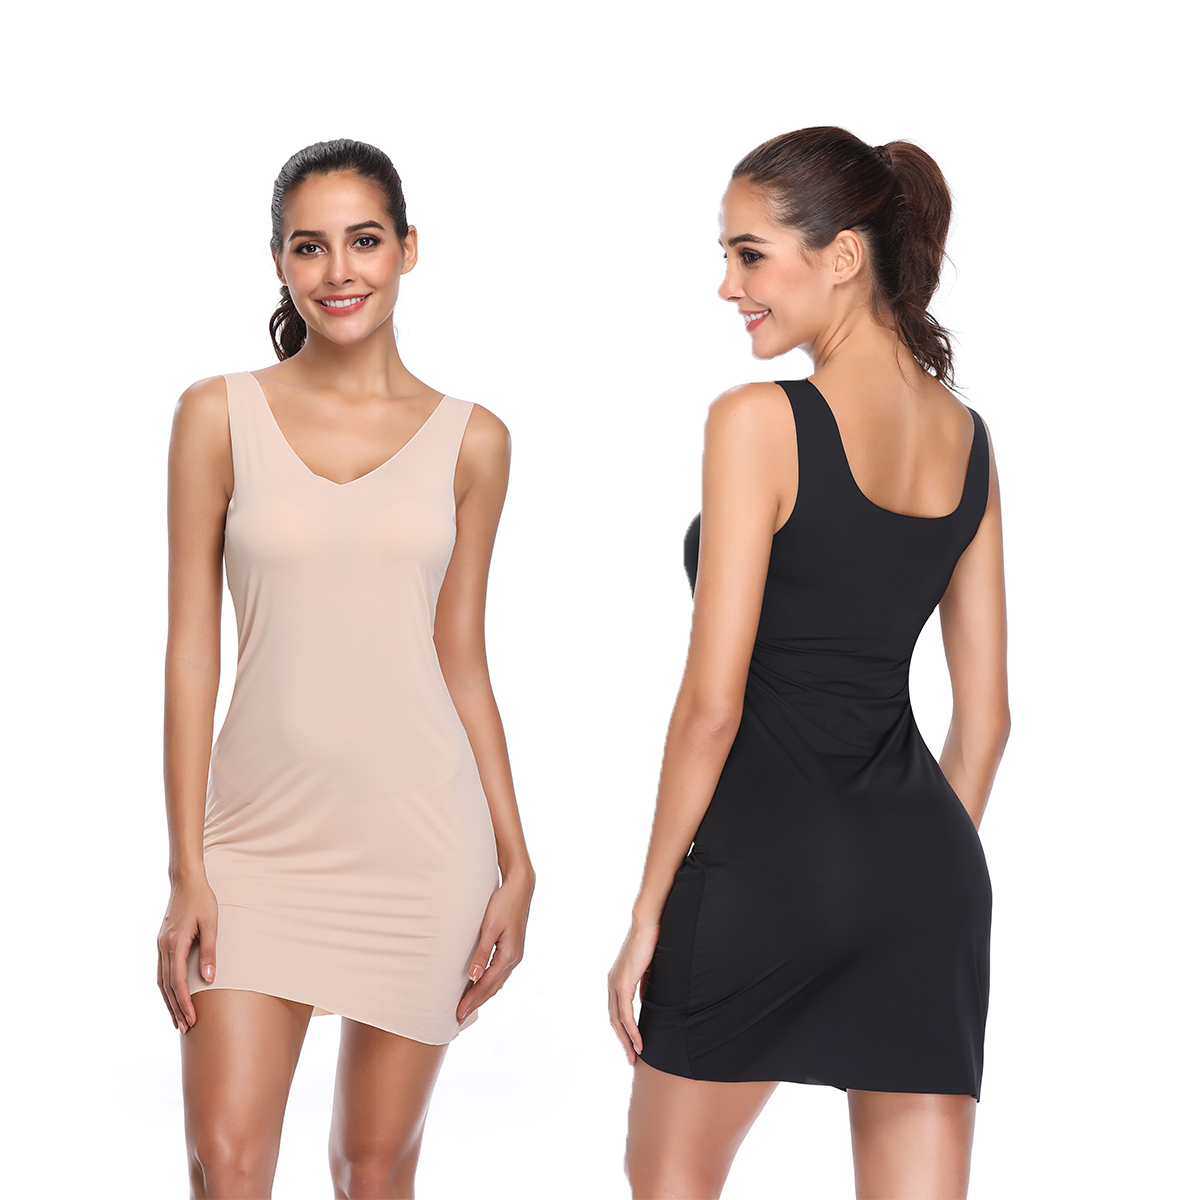 Slimming & Shaping Camisole | Black tank tops, Camisole